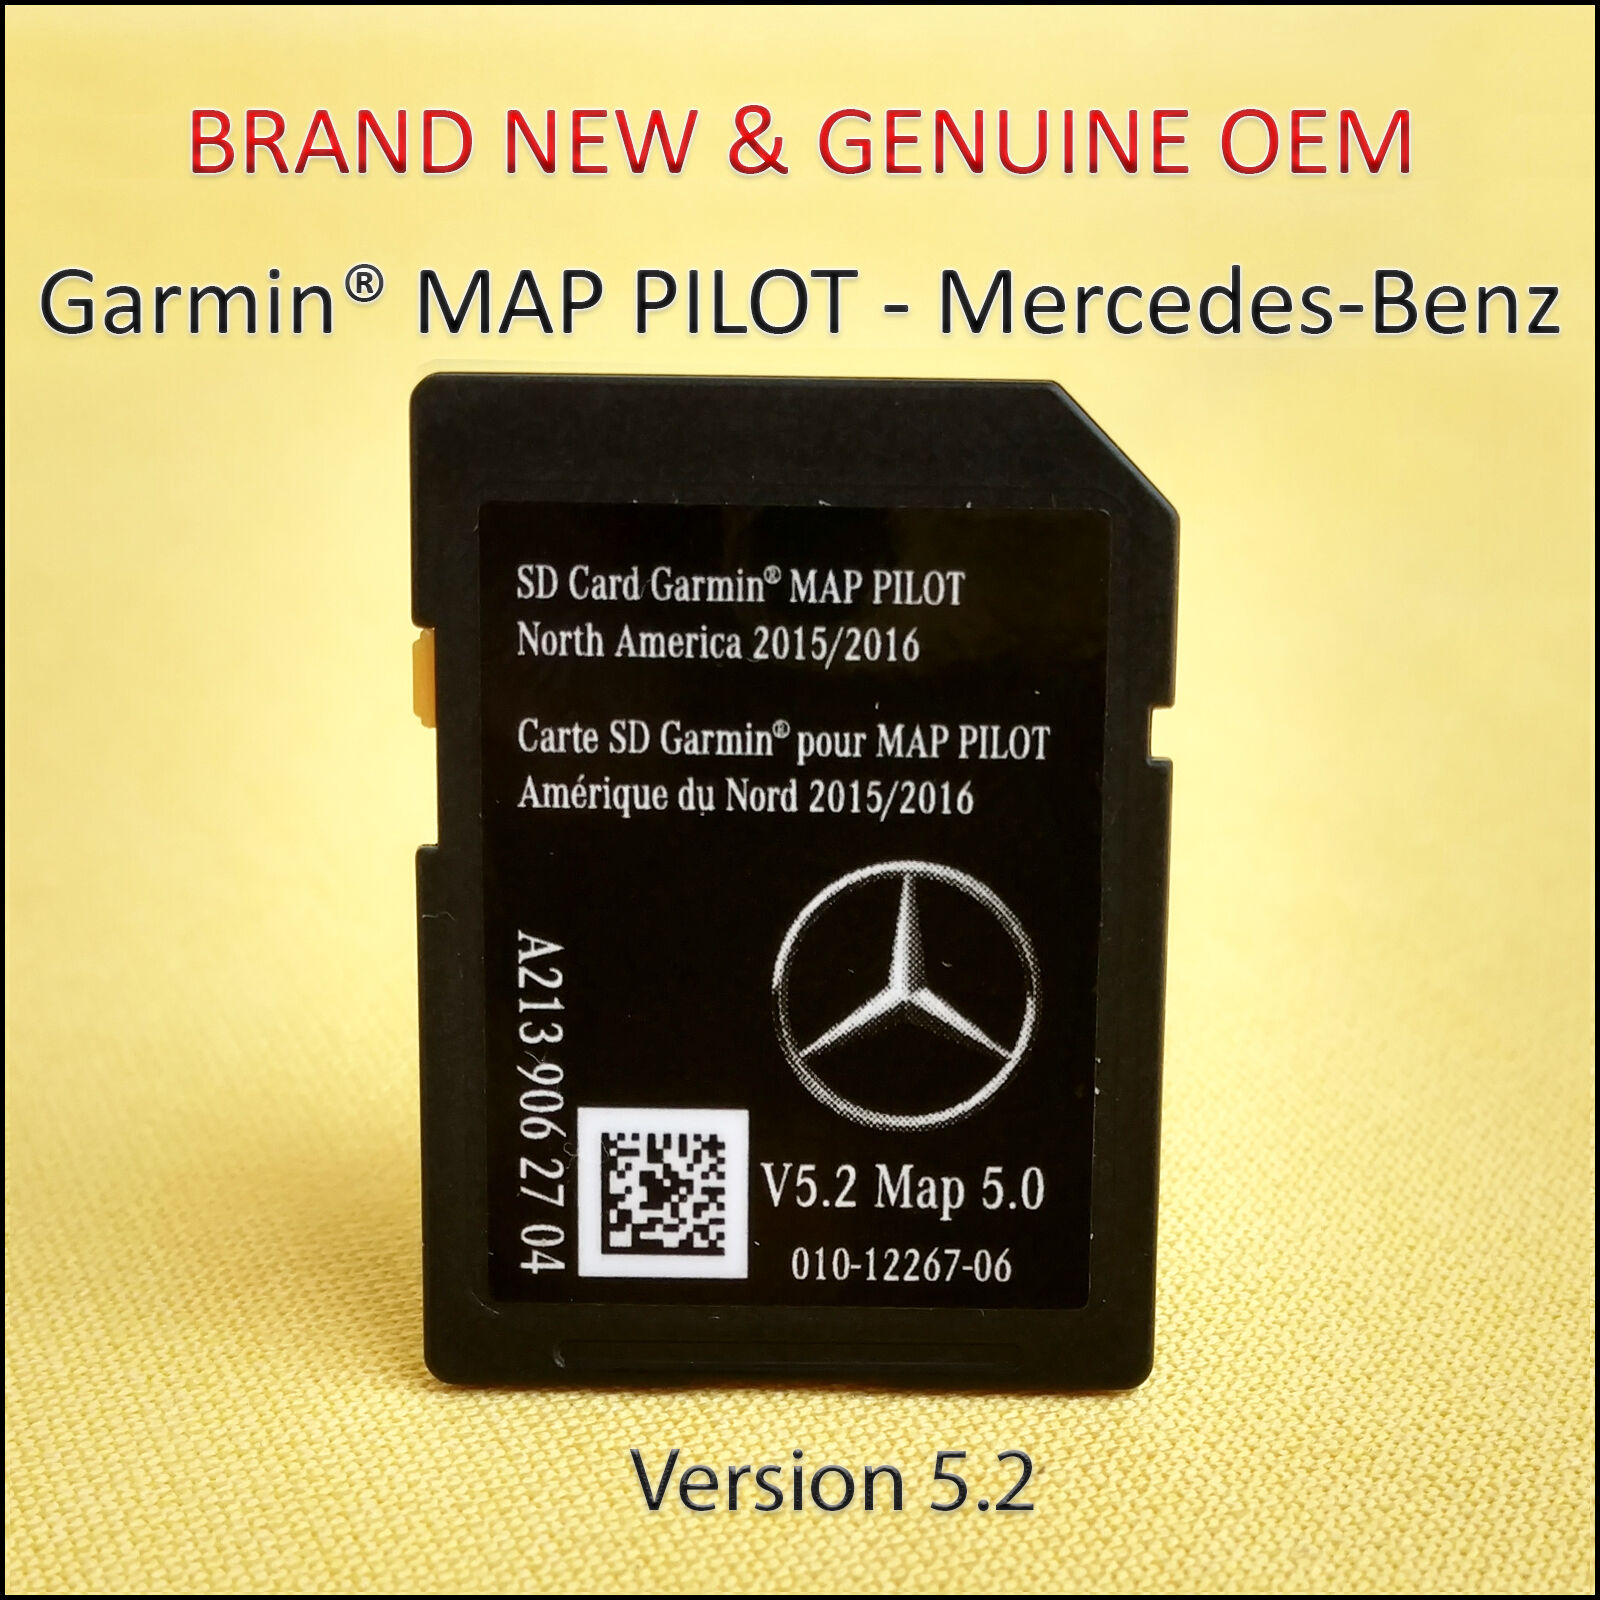 mercedes benz sd card garmin map pilot 2015 2016 2017 e glc c class usa canada ebay. Black Bedroom Furniture Sets. Home Design Ideas